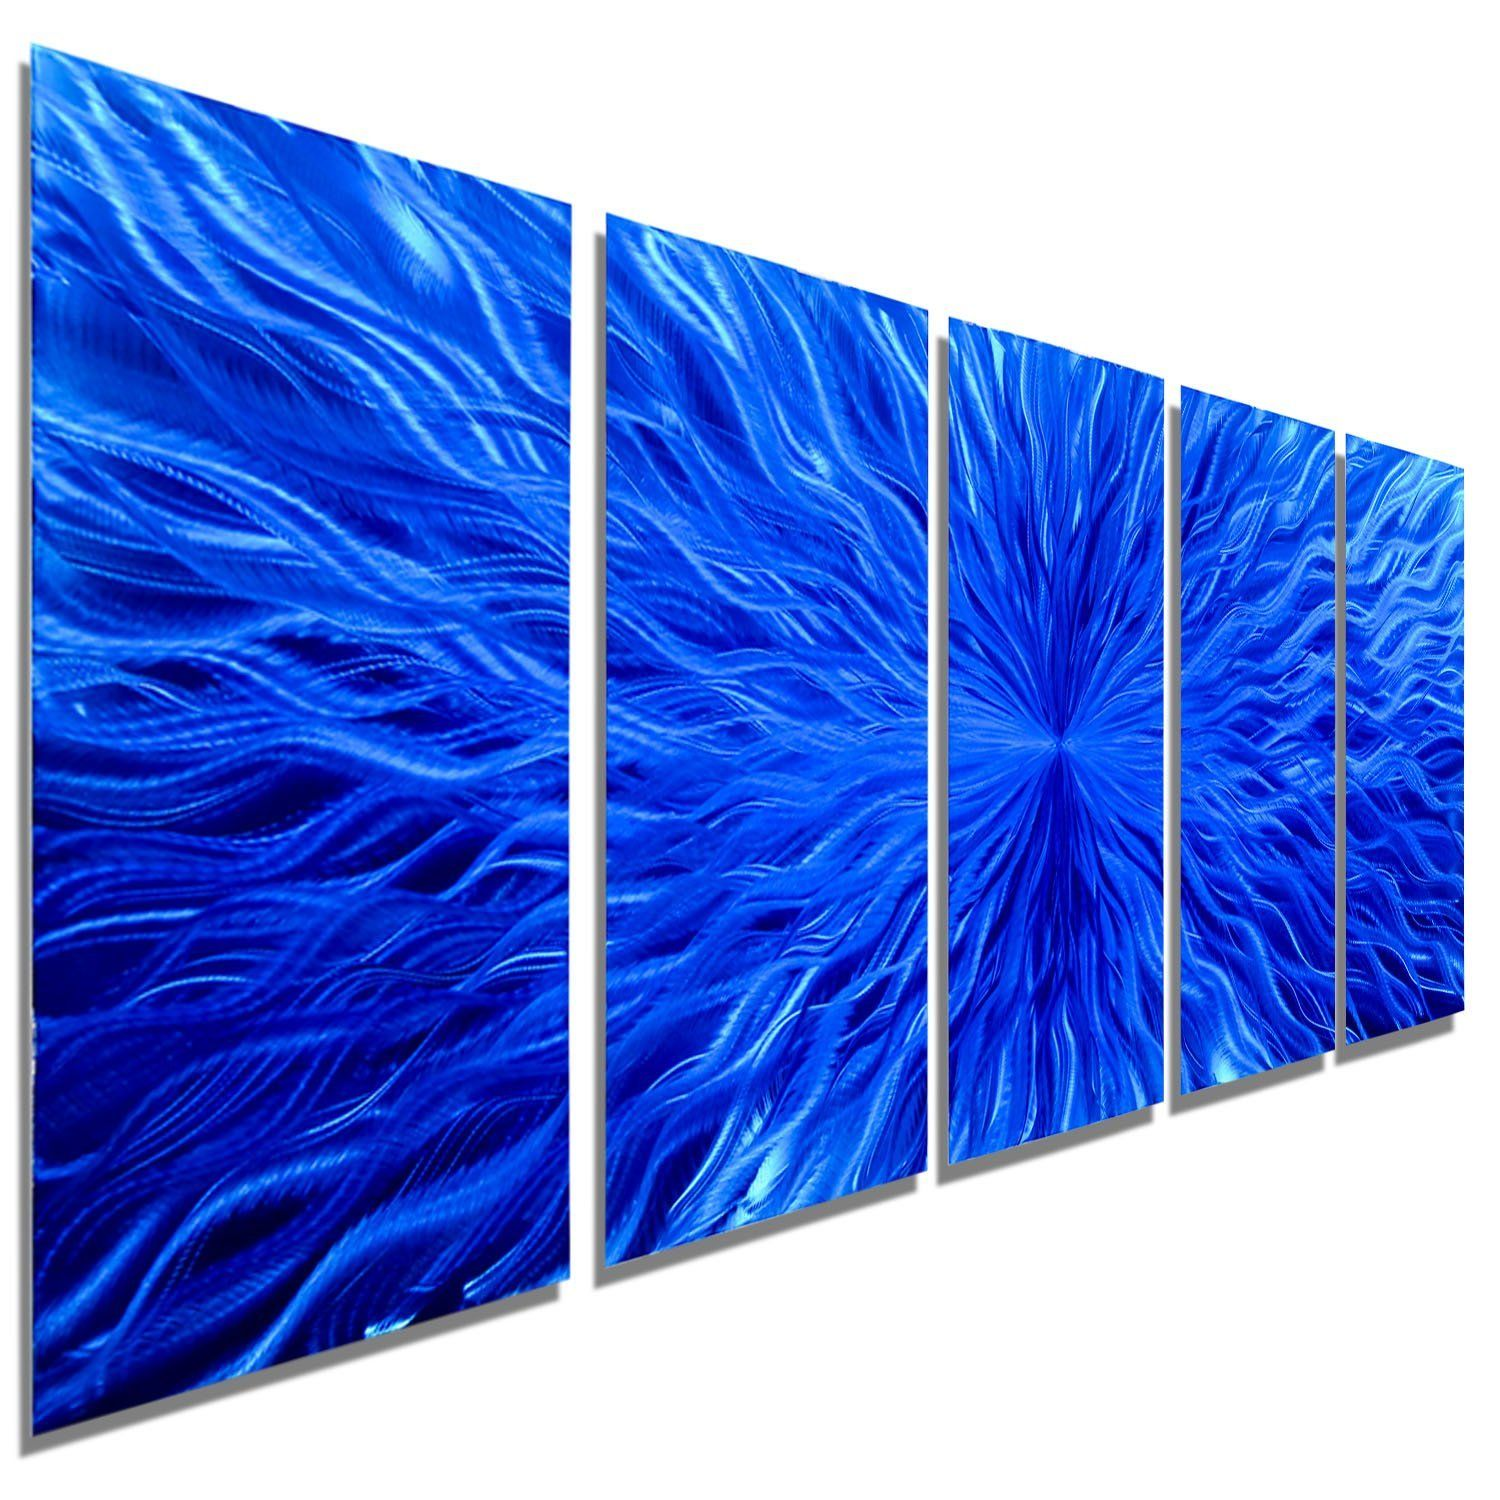 Blue Metal Wall Decor Mesmerizing Large Blue Contemporary Metal Wall Art Sculpture  Multi Panel Decorating Design